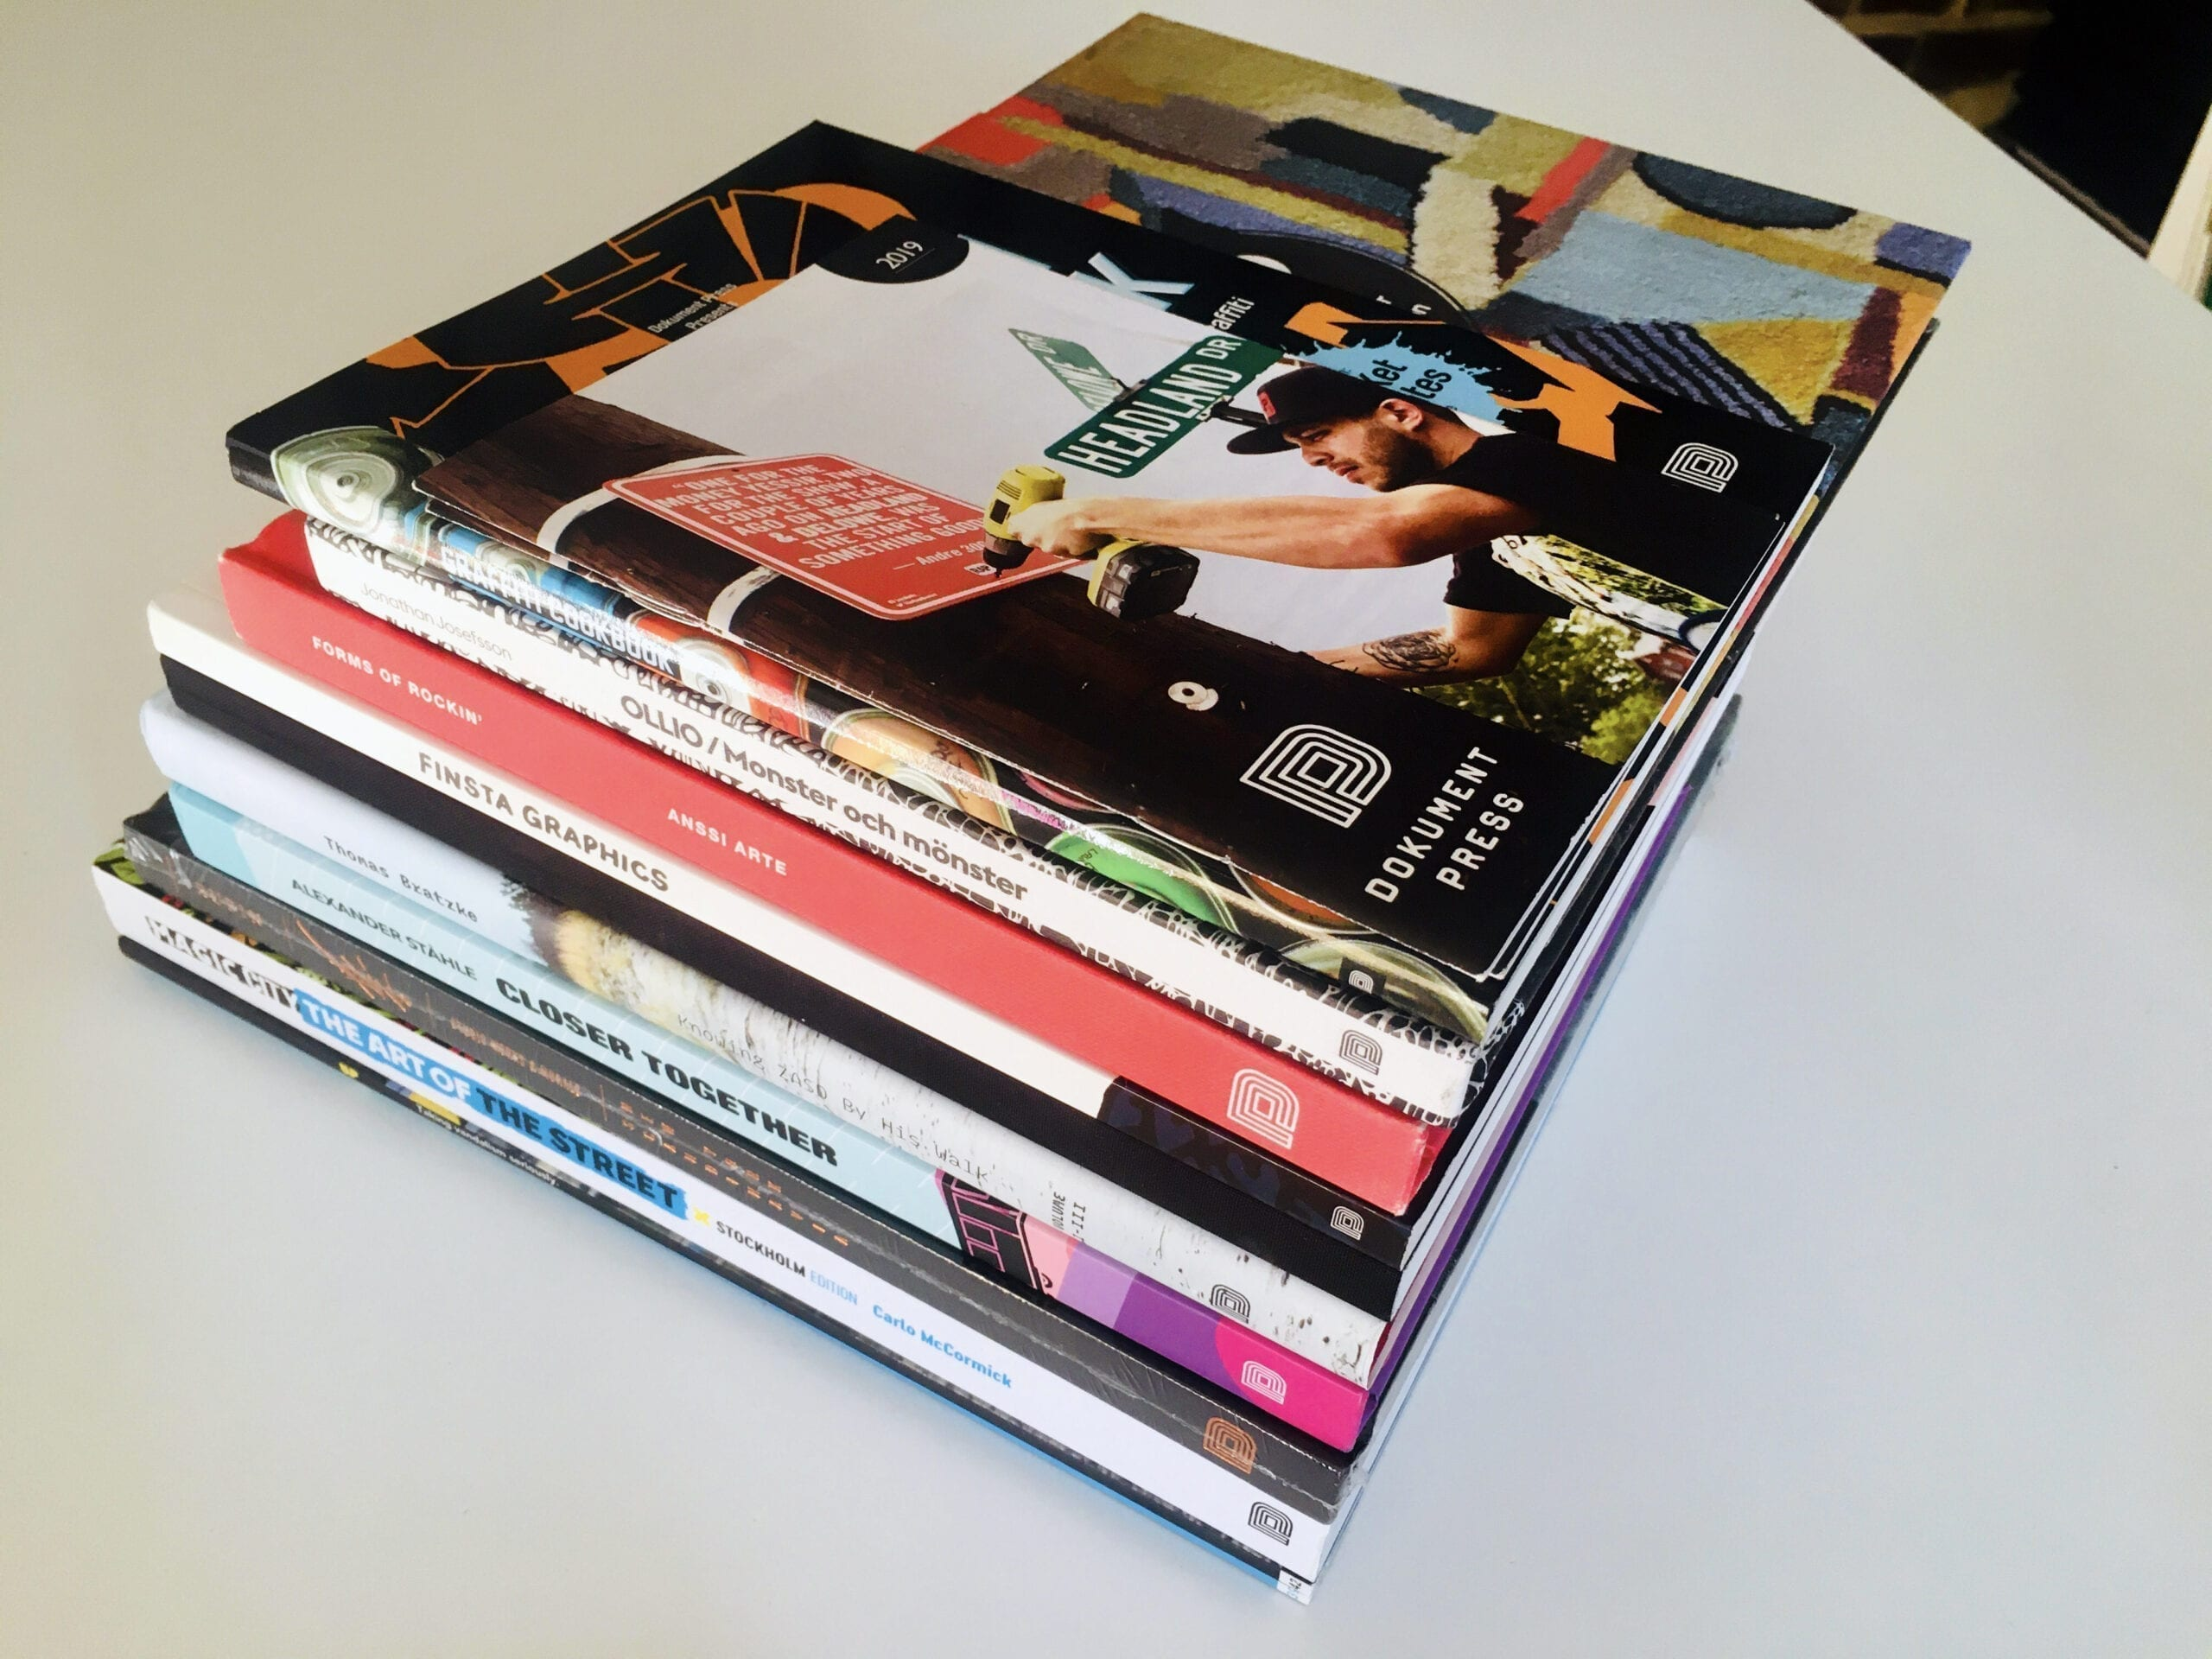 9 graffiti and contemporary art books and 2 magazine issues from Dokument Press